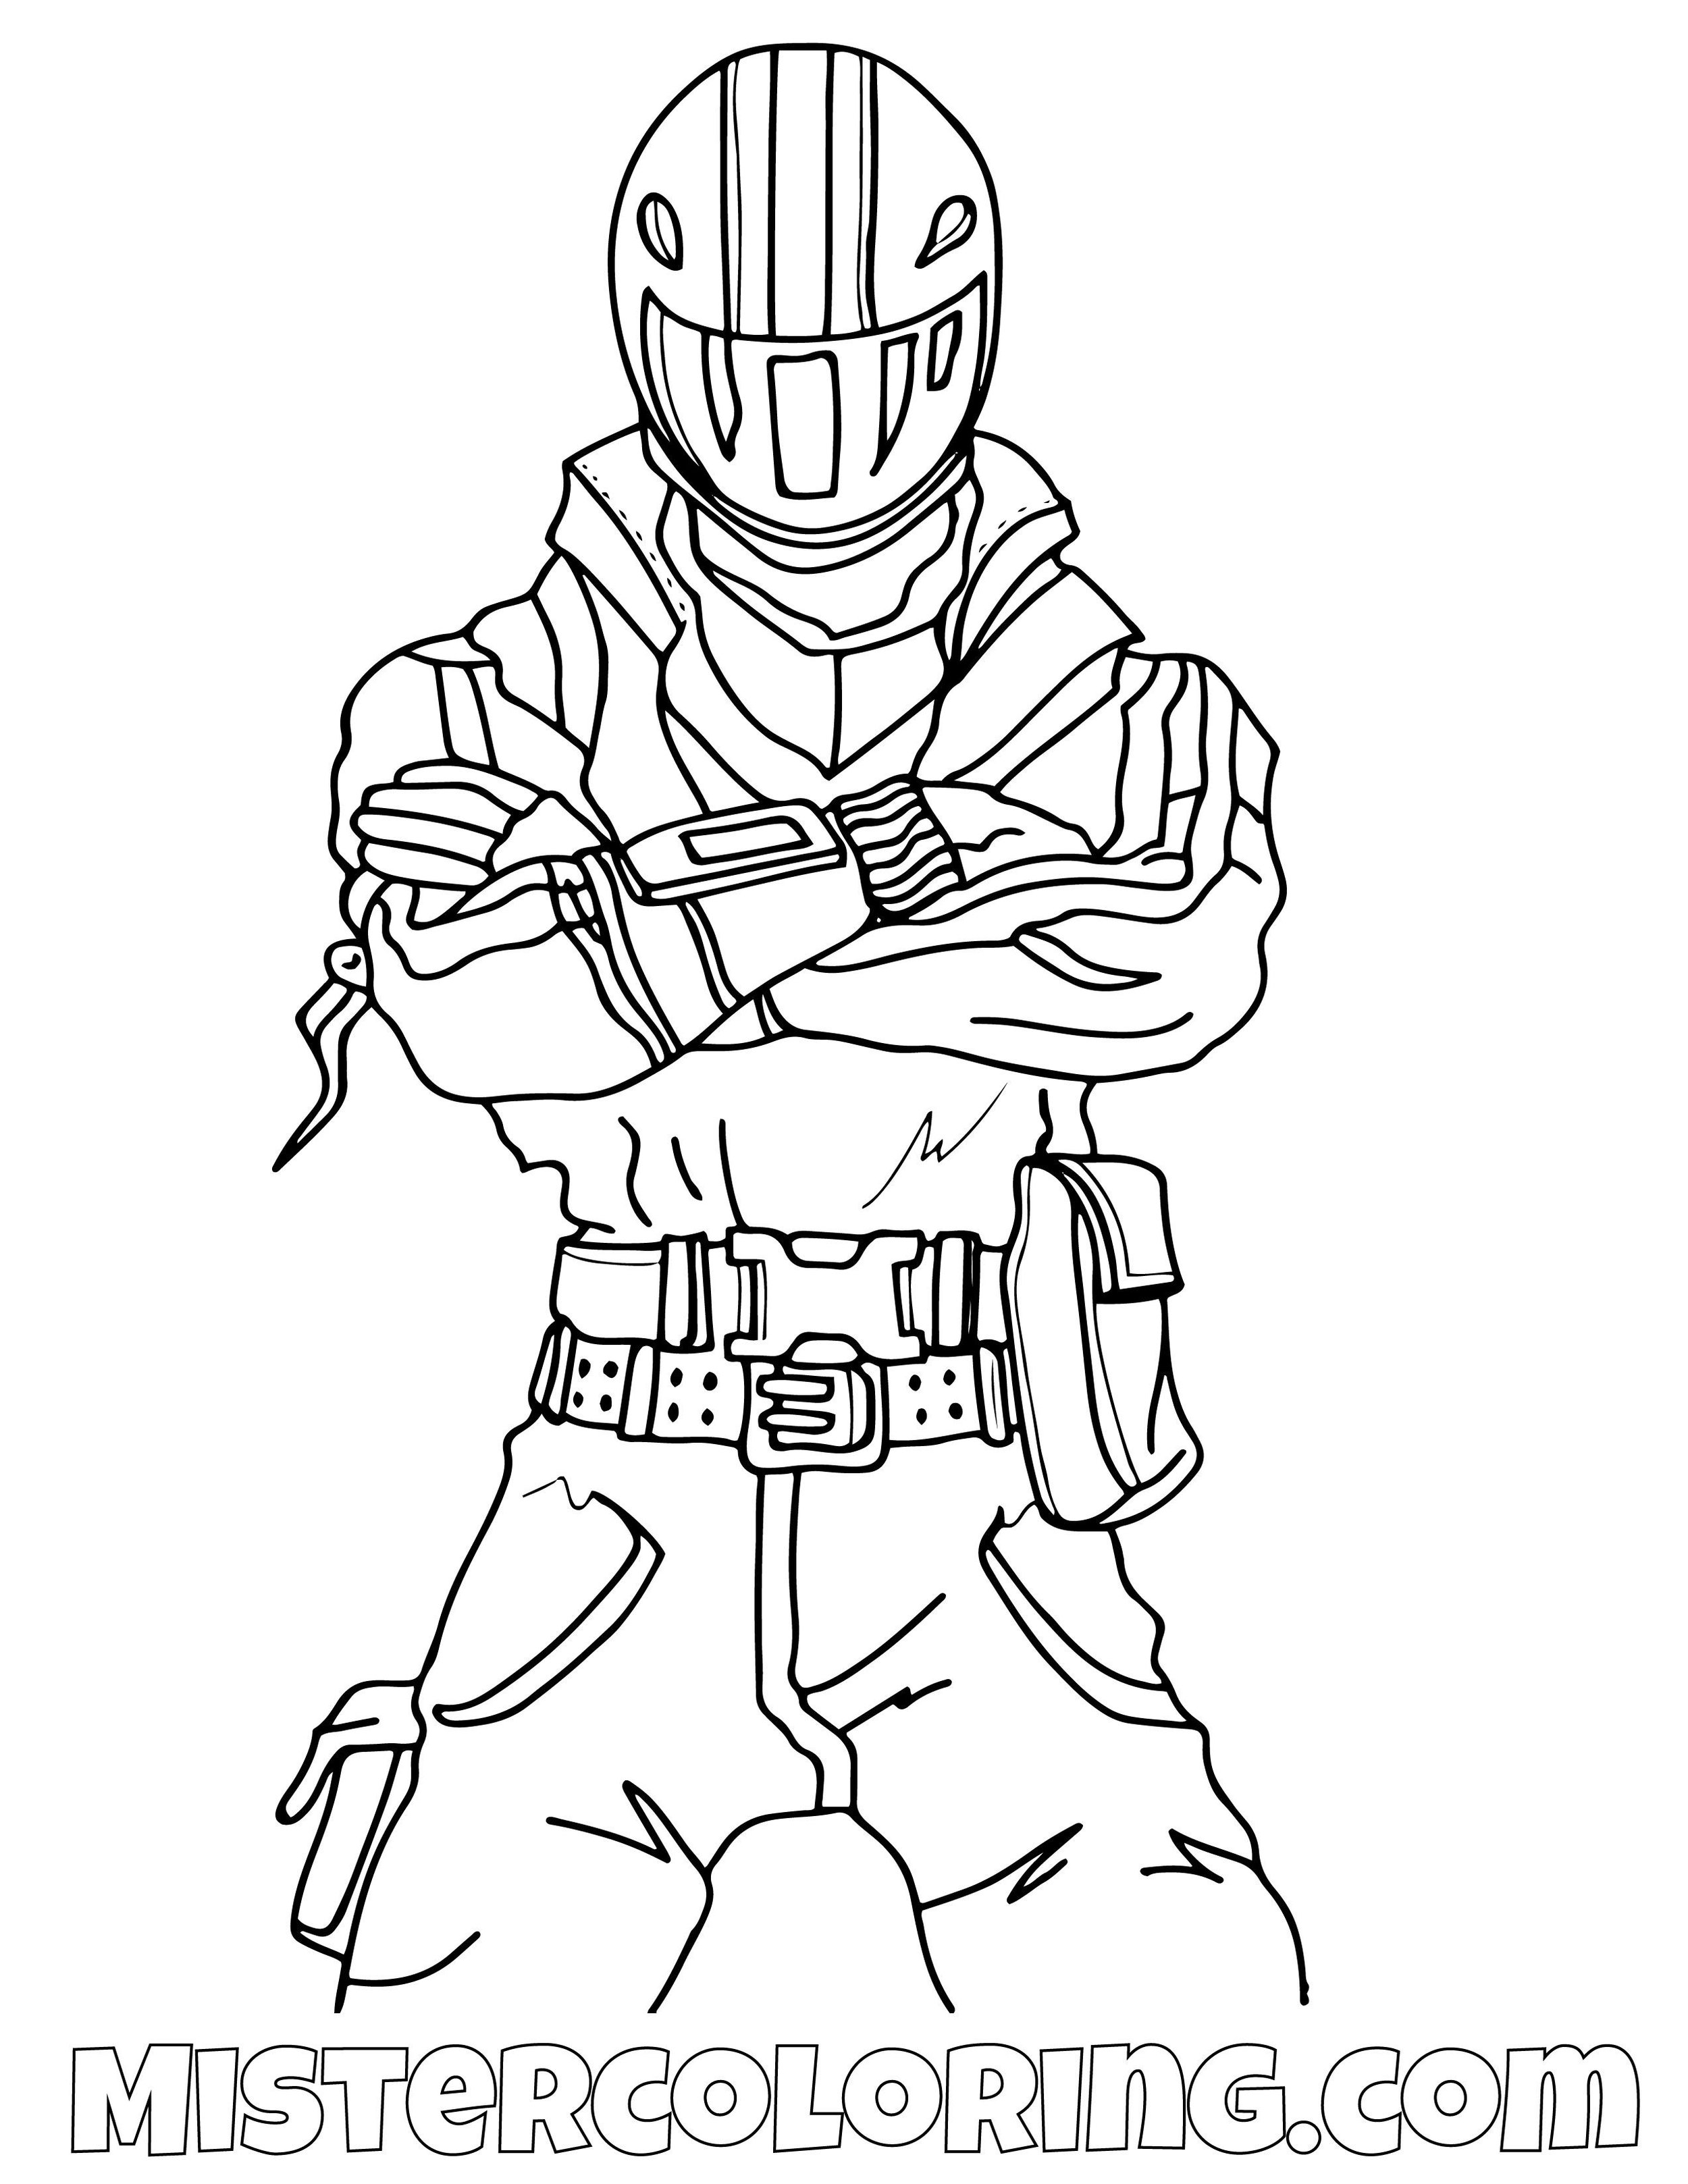 Night Rider Fortnite Coloring Page